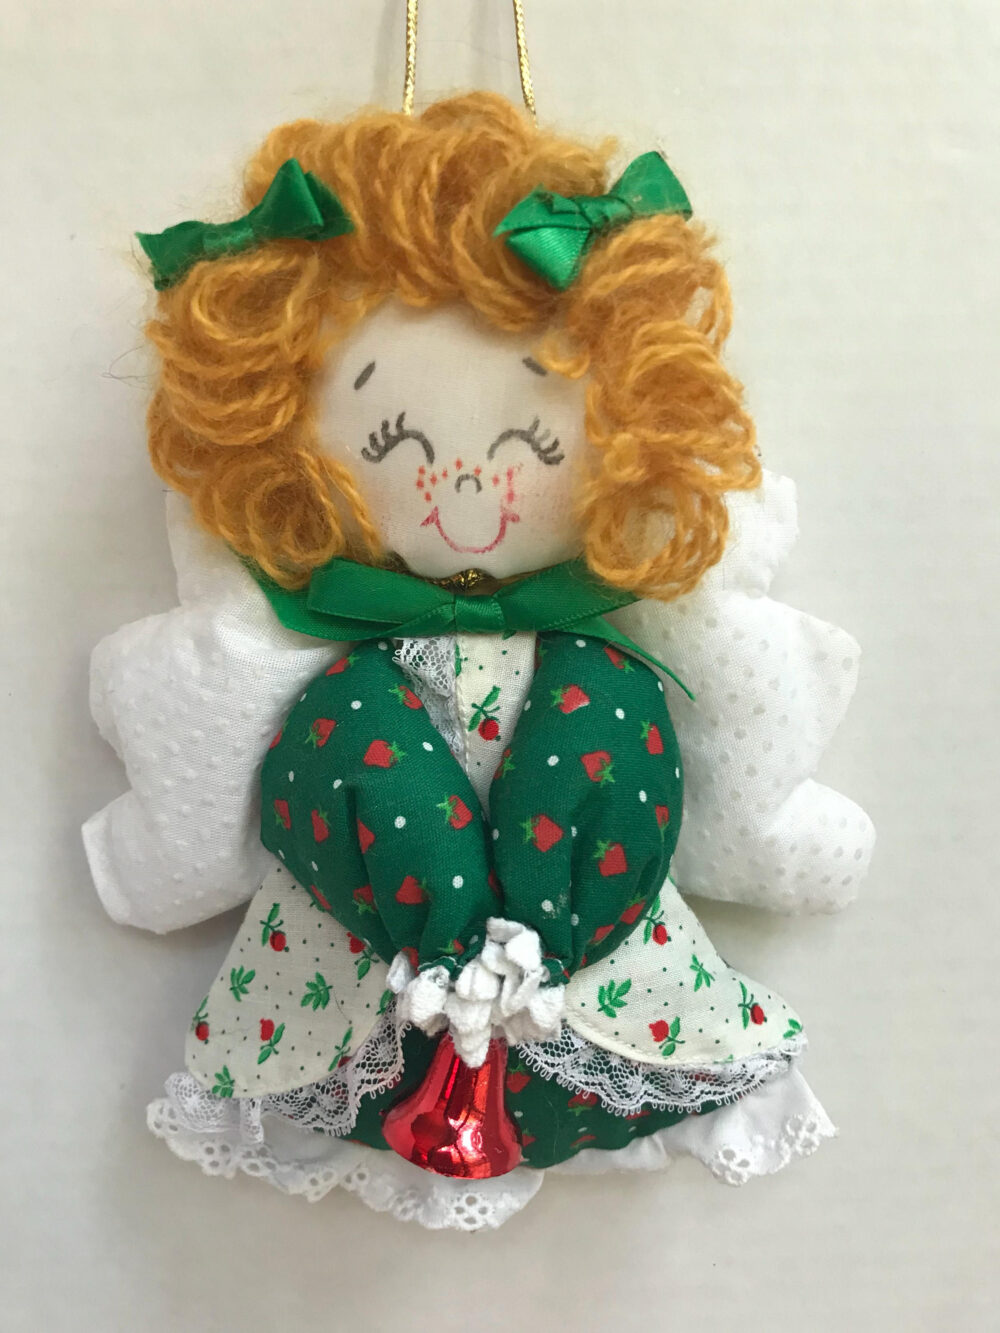 Handmade Angel Ornament... Amazing Details Bell Eyelet Lace Trim 1980's Holiday Decoration Gift Item Friend Mother Christmas